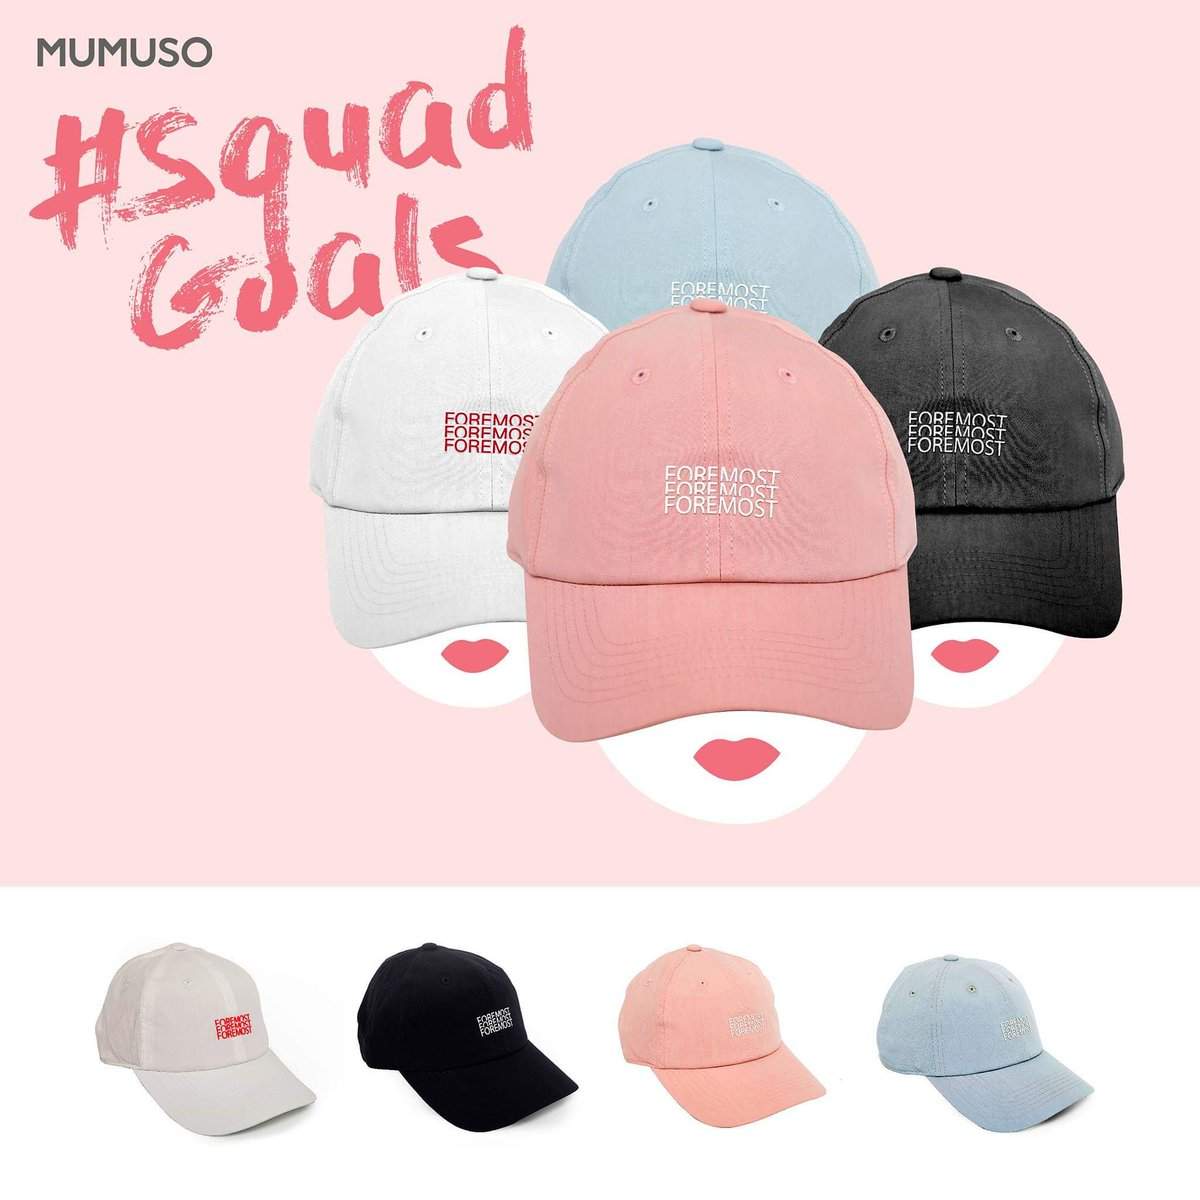 Cool caps for your cool squad! 😉👊  #Mumuso